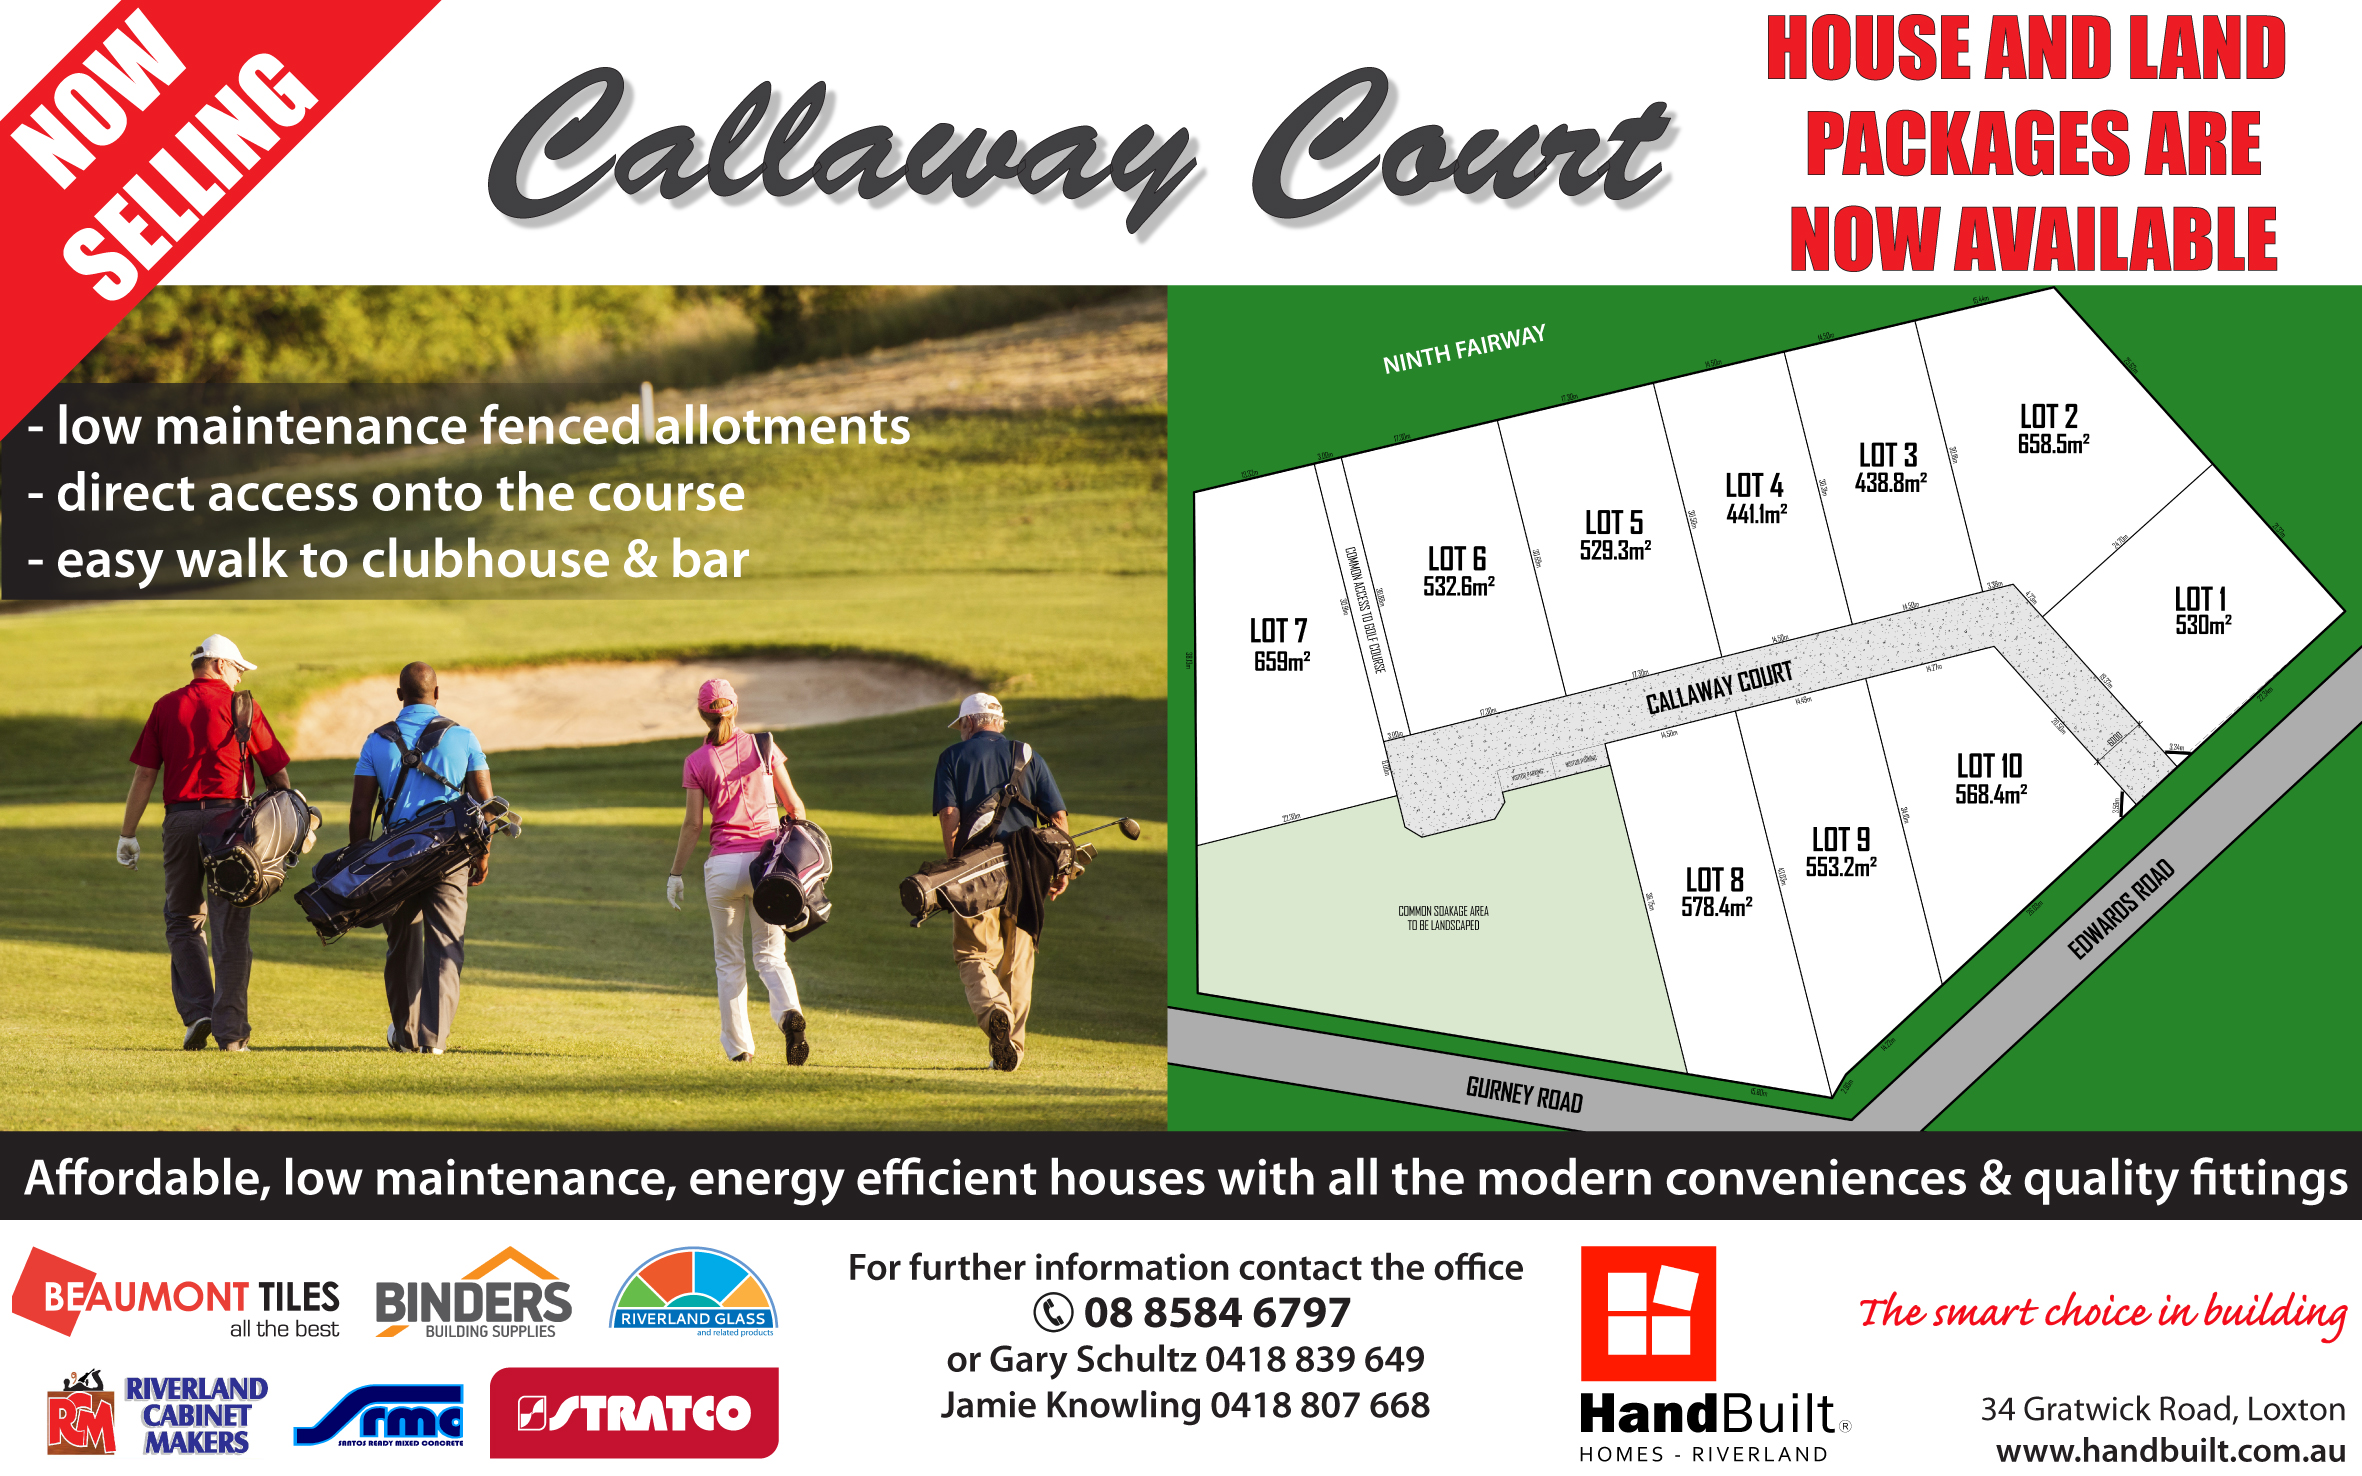 Callaway_Court_advertising_sign_3_low_res.jpg